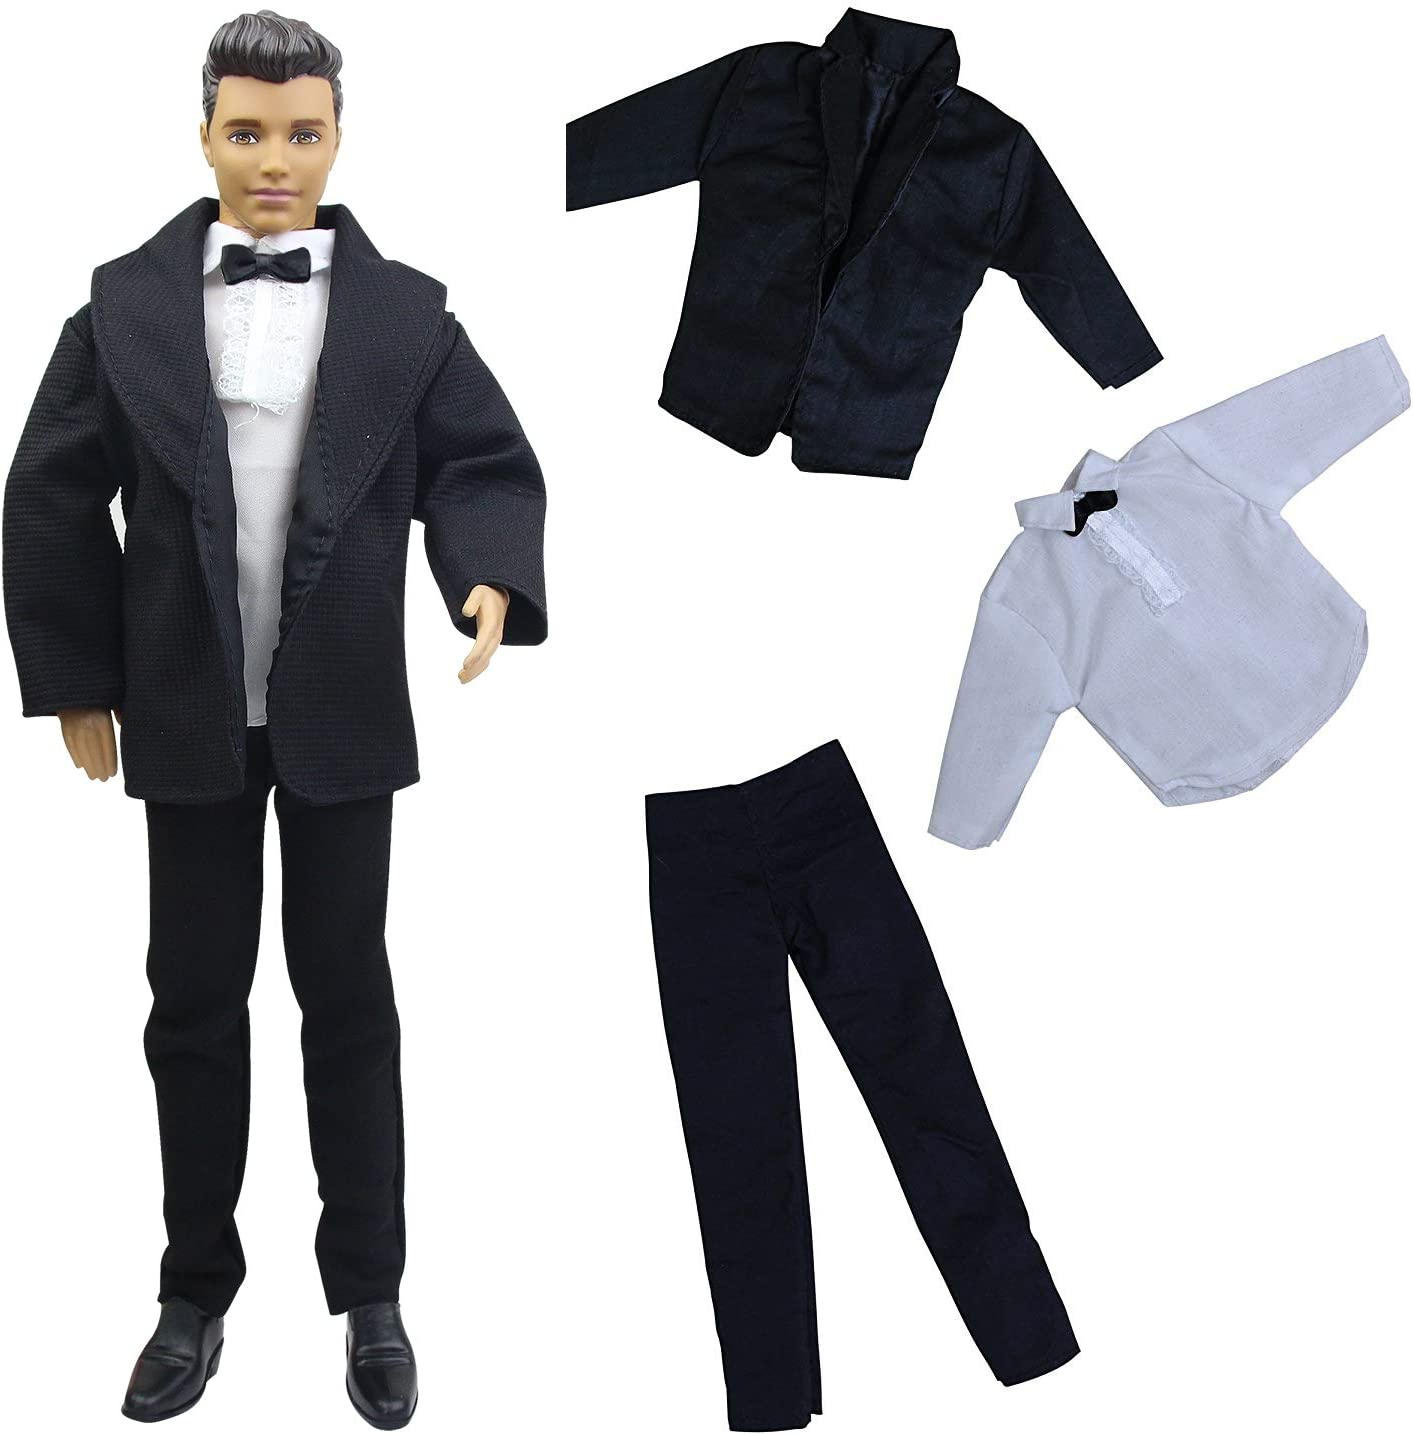 ZITA ELEMENT Fromal Office Suit Set for 11.5 Inch Girl Doll Boyfriend Doll Clothes Outfits